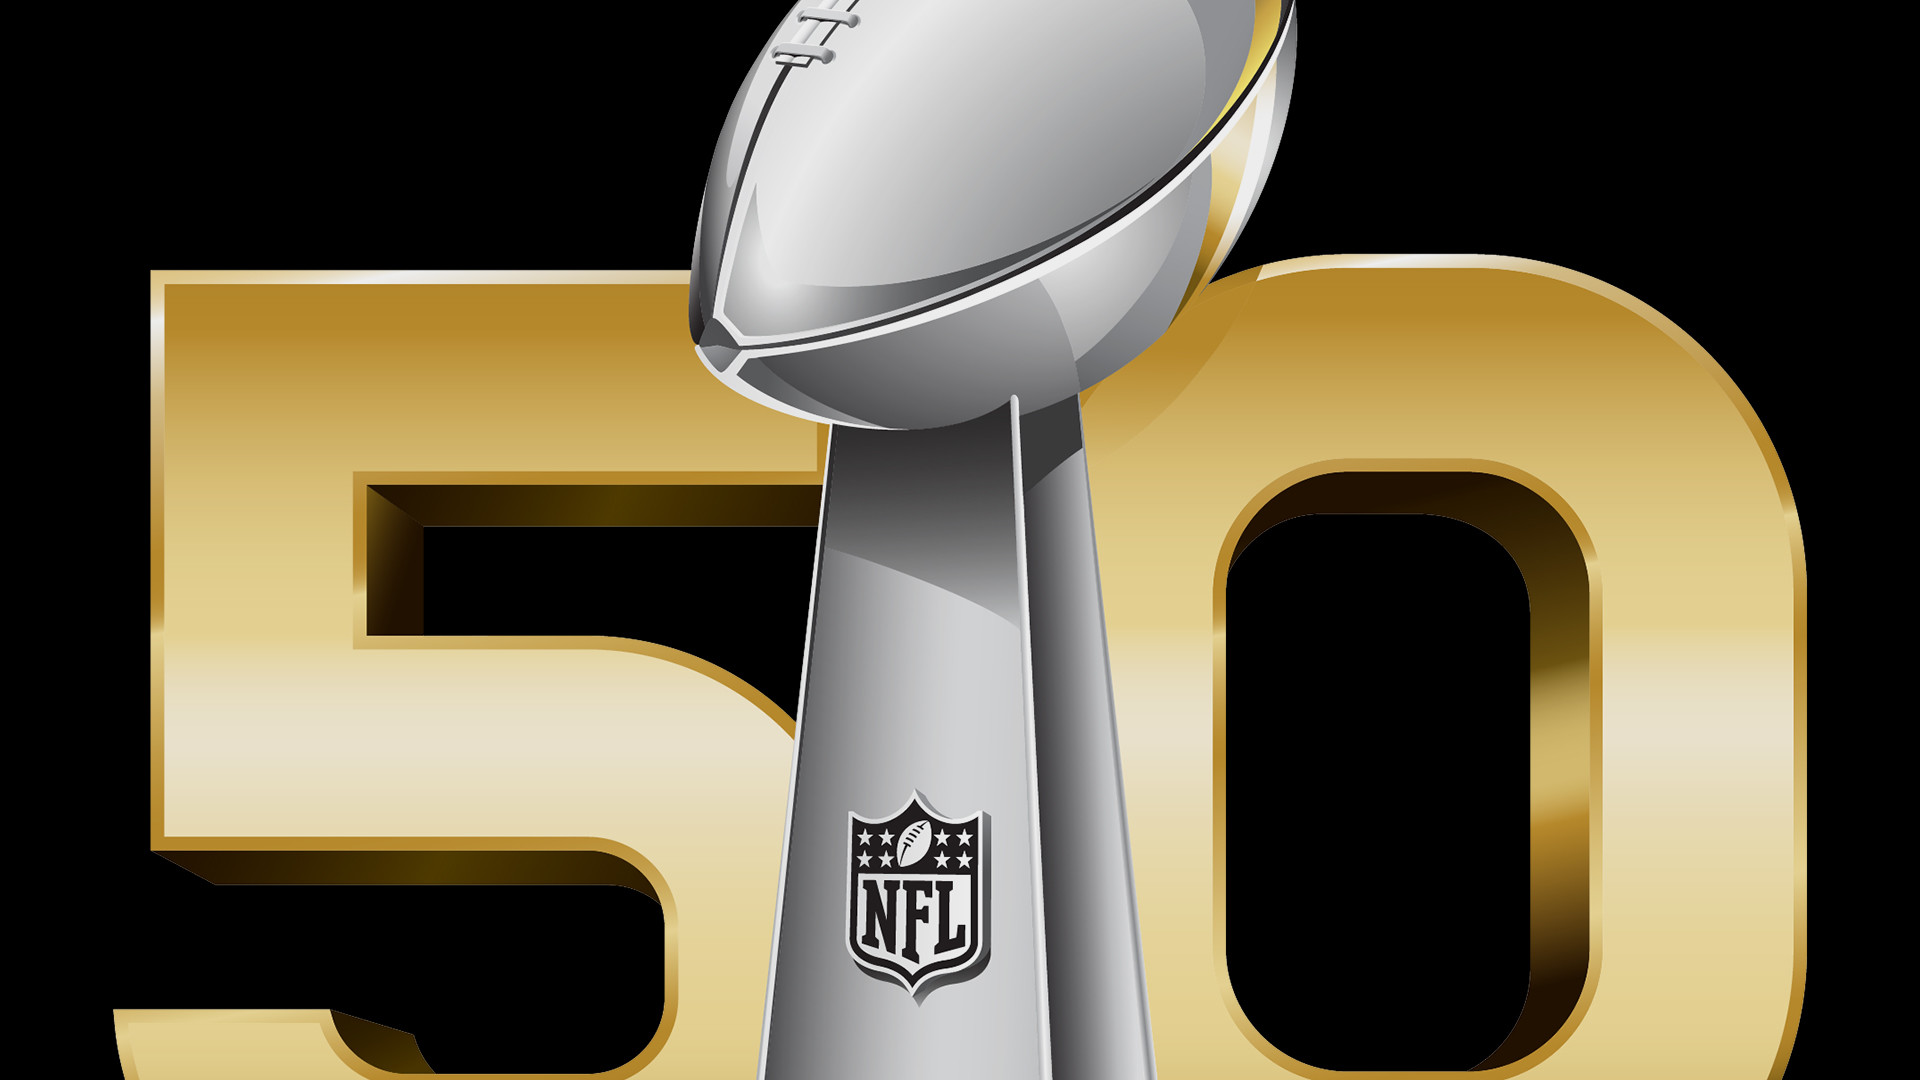 1920x1080 Super Bowl 50 Advertisers: These Brands Are Ready To Play The Commercial  Game